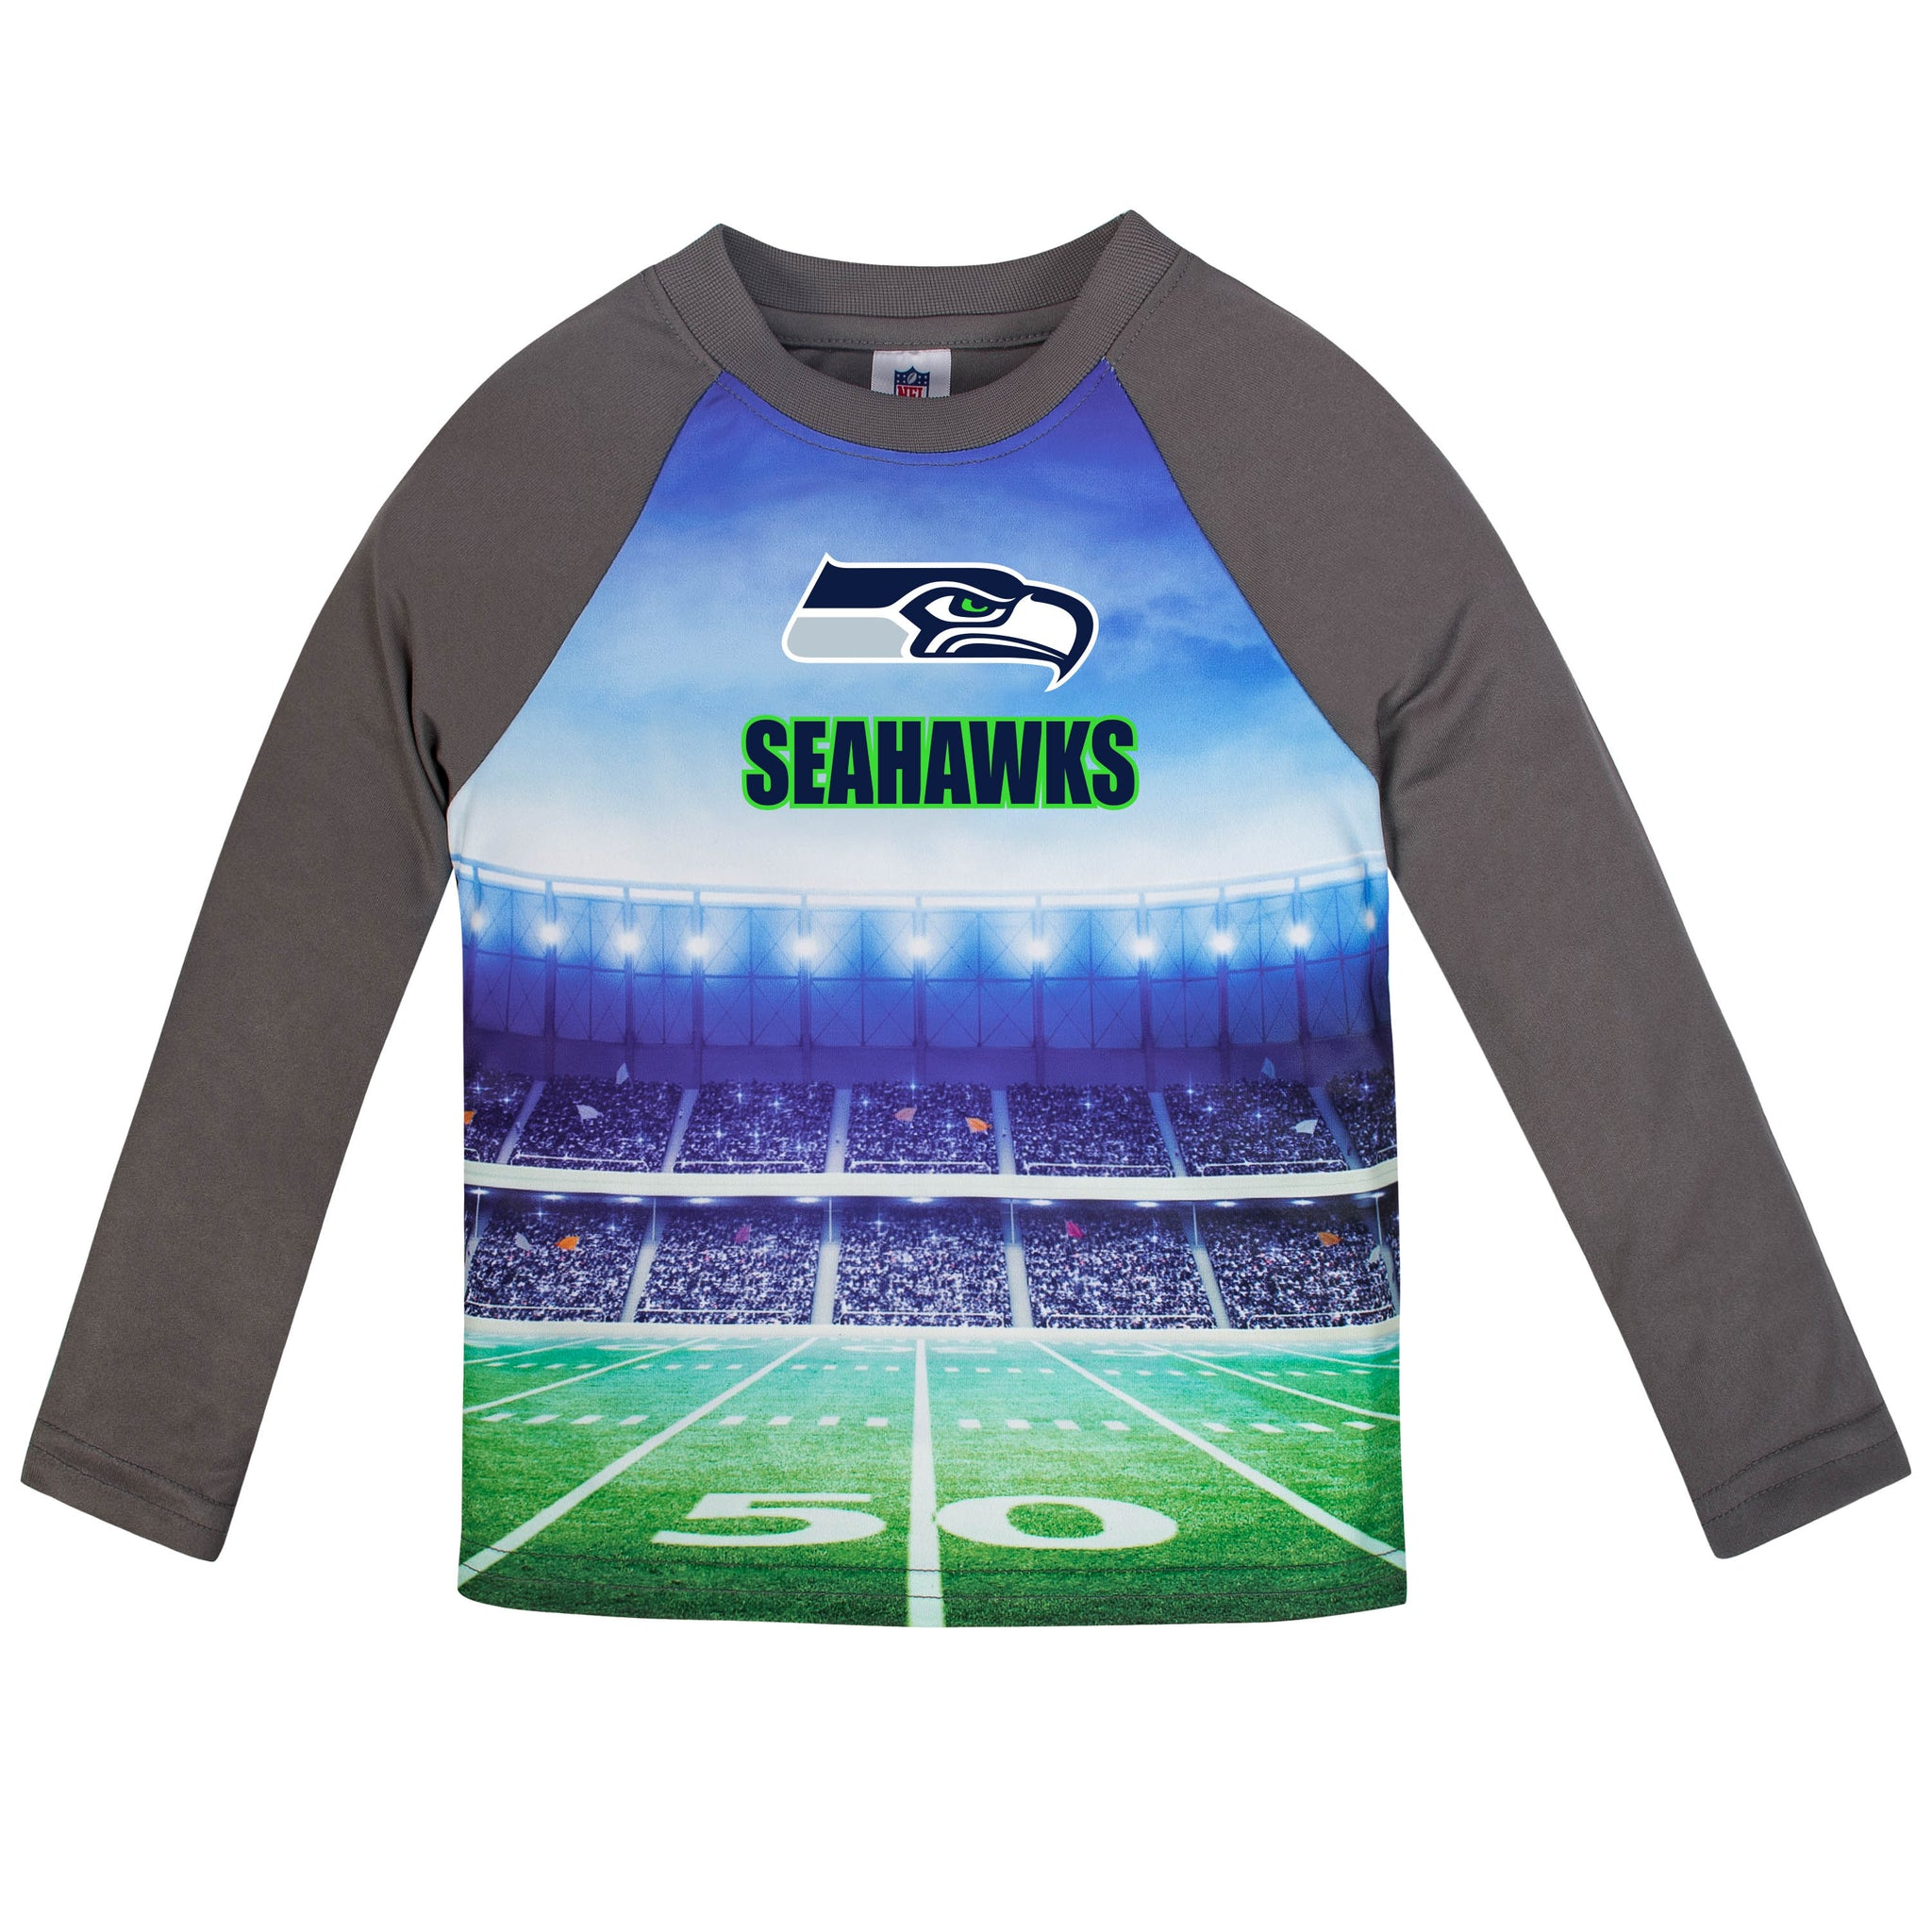 Seattle Seahawks Boys Long Sleeve Tee Shirt-Gerber Childrenswear